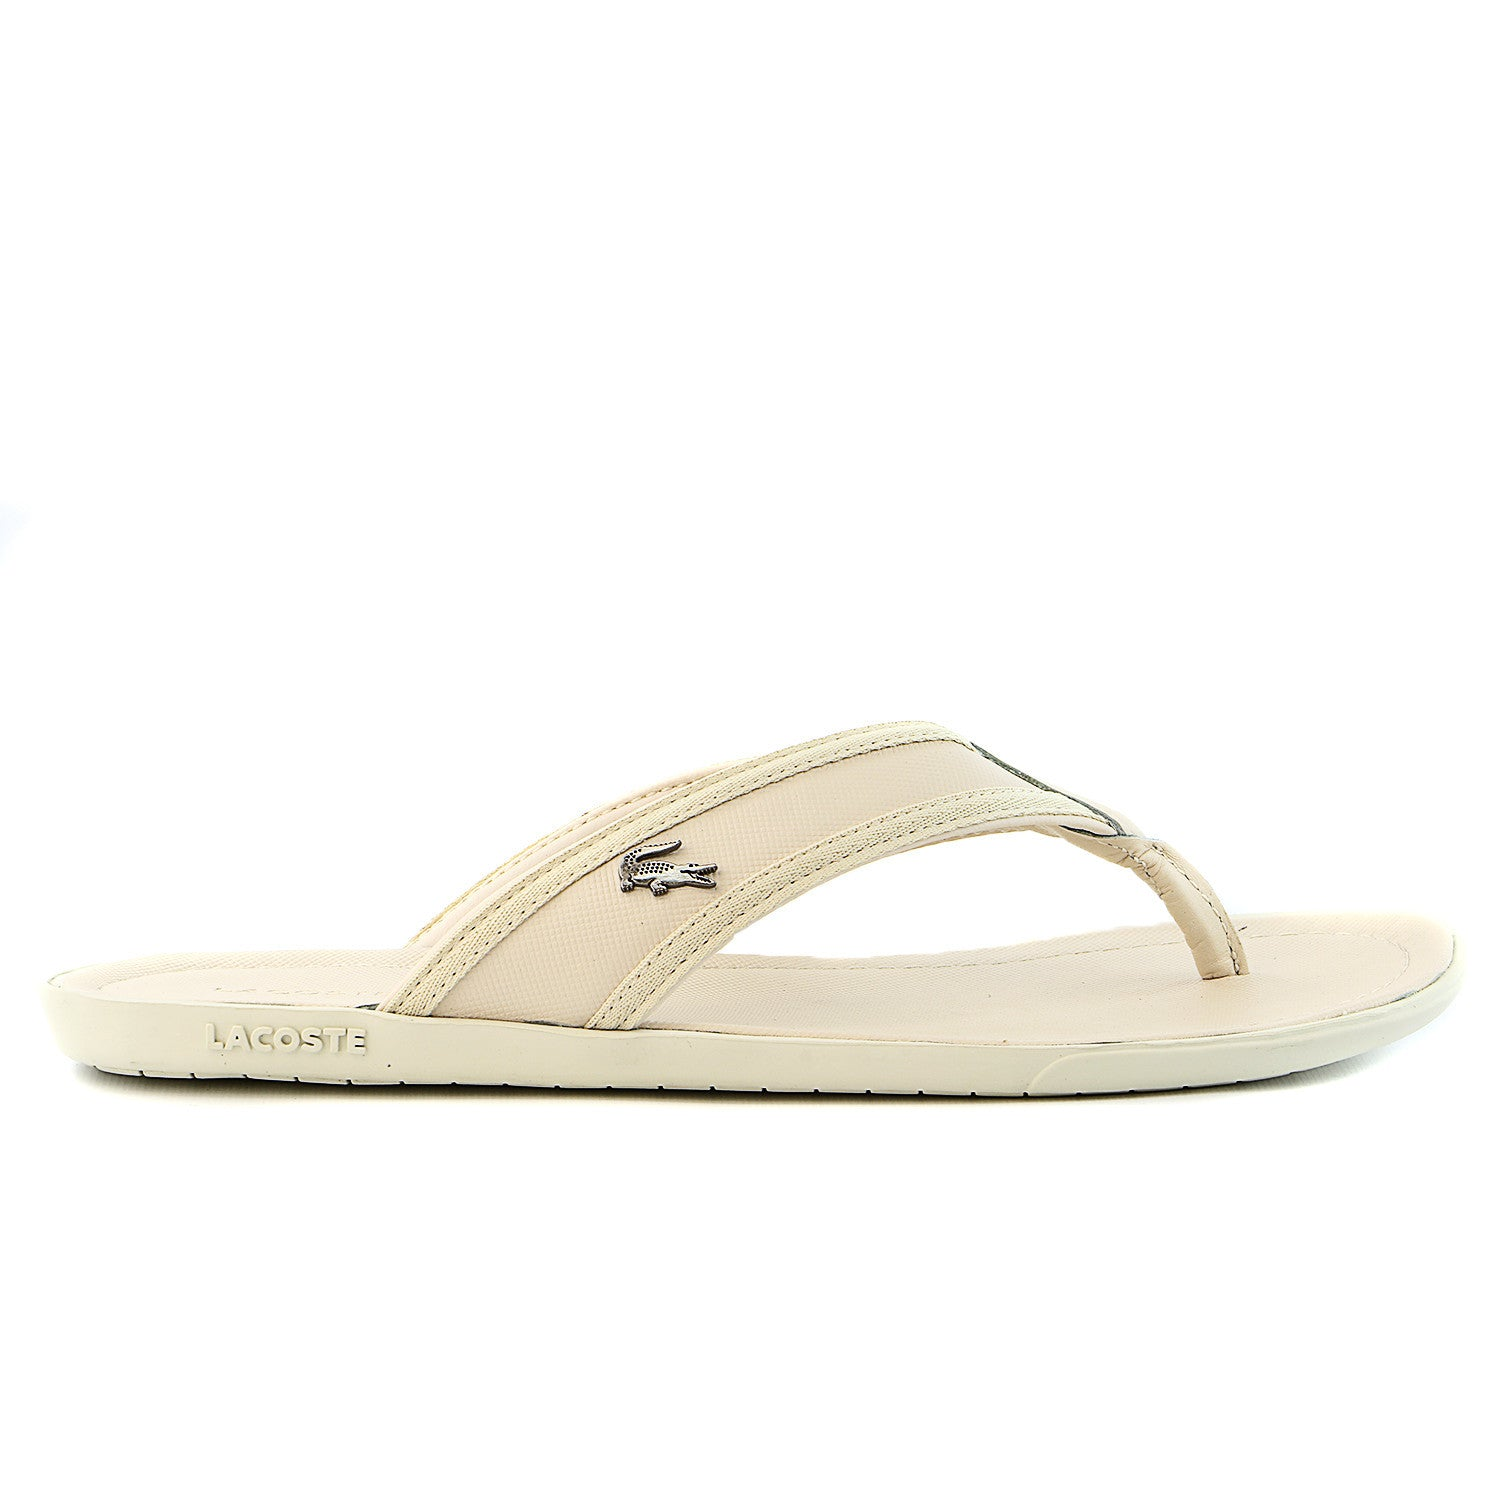 a814eccb9d929 Lacoste Carros 6 Leather Flip Flop Thong Sandal - Black - Mens ...